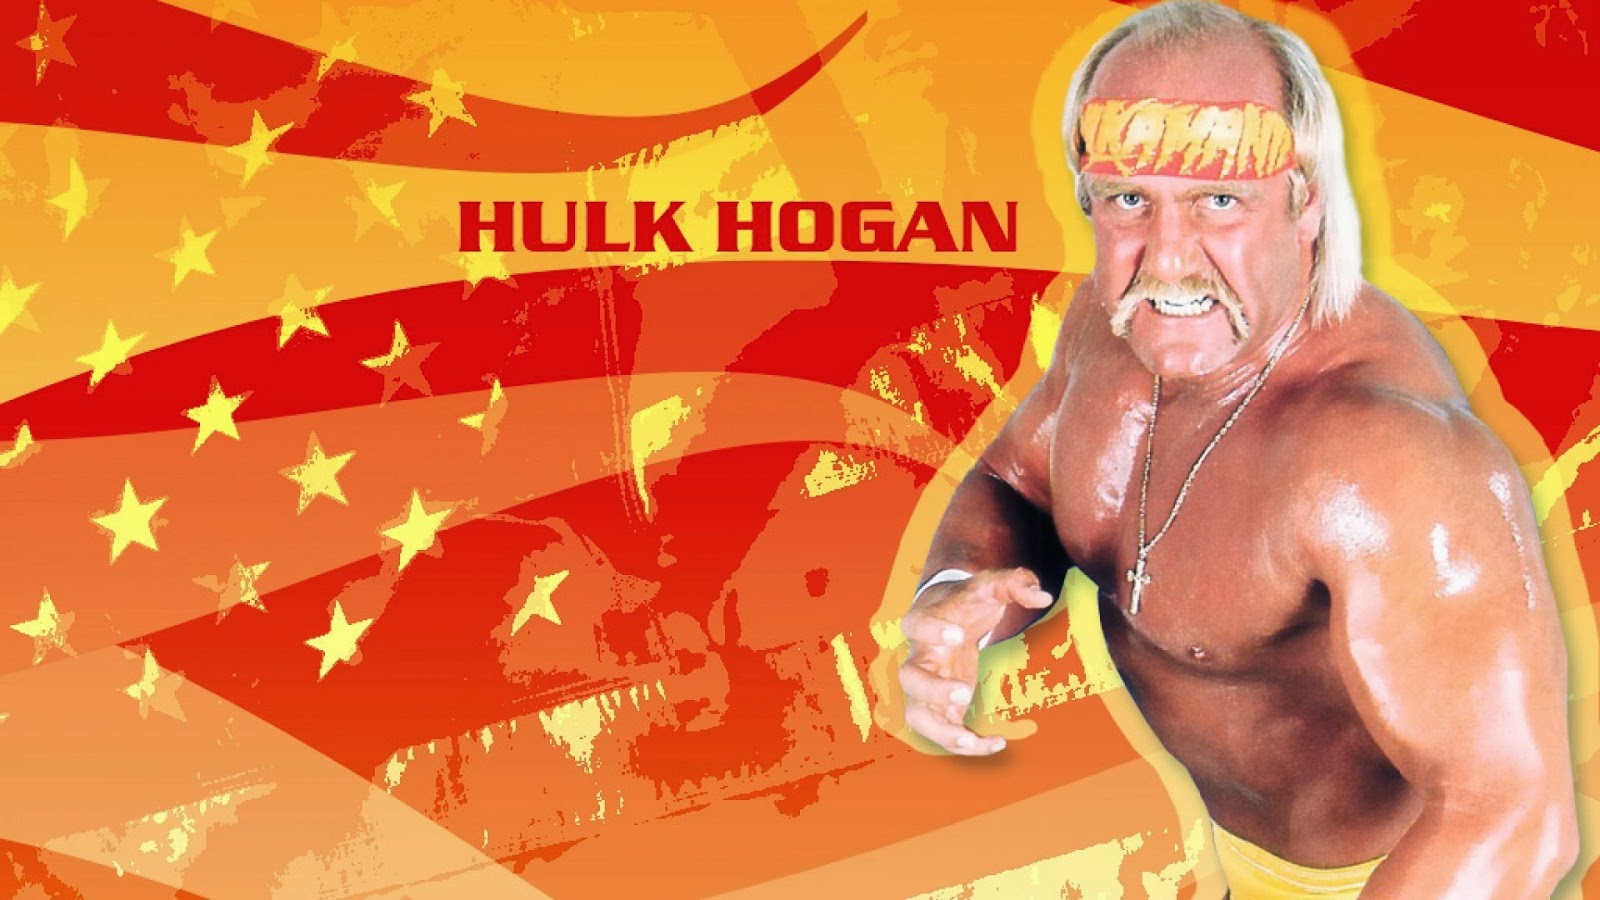 hulk hogan wallpapers - photo #15